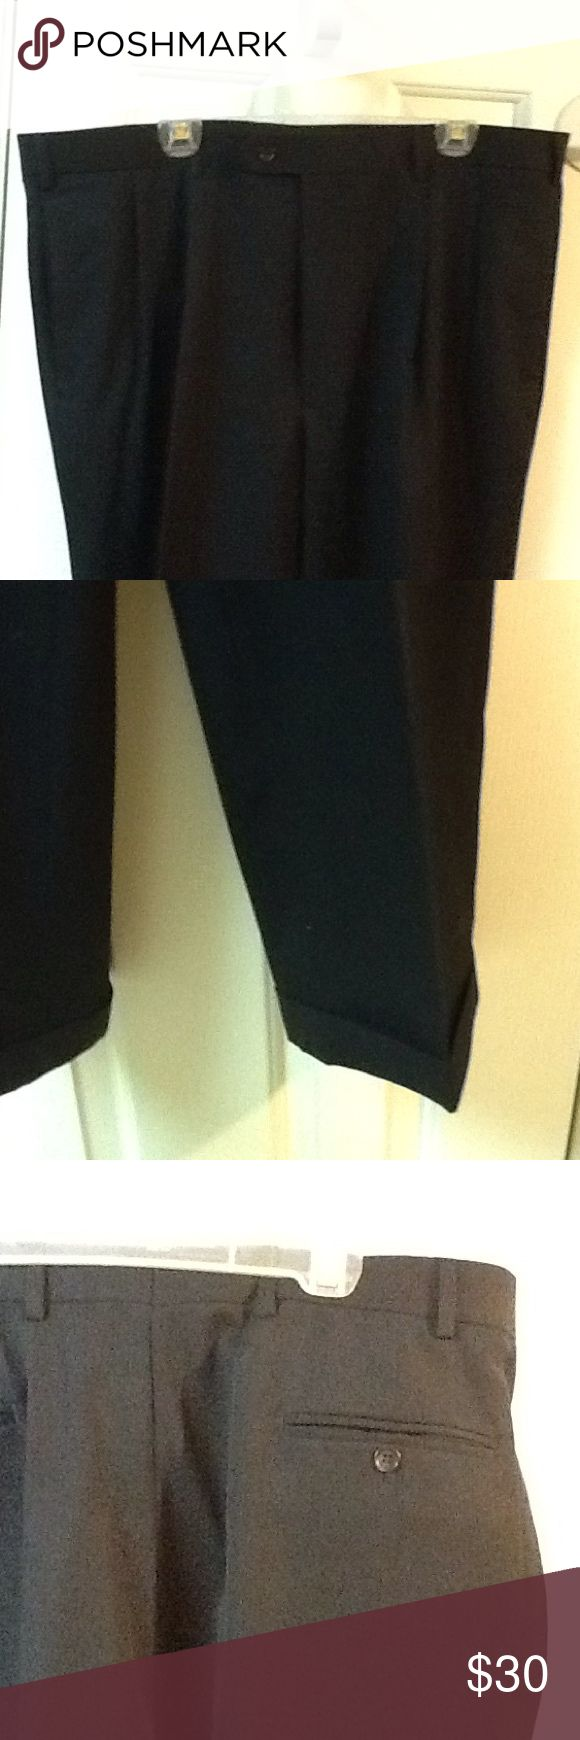 Men's Dress Pants Navy Blue Brooks Brothers 346 Brooks Brothers navy blue wool pants. Pleated and cuffed in great condition. Size 40 X 32. Dry clean Brooks Brothers Pants Dress